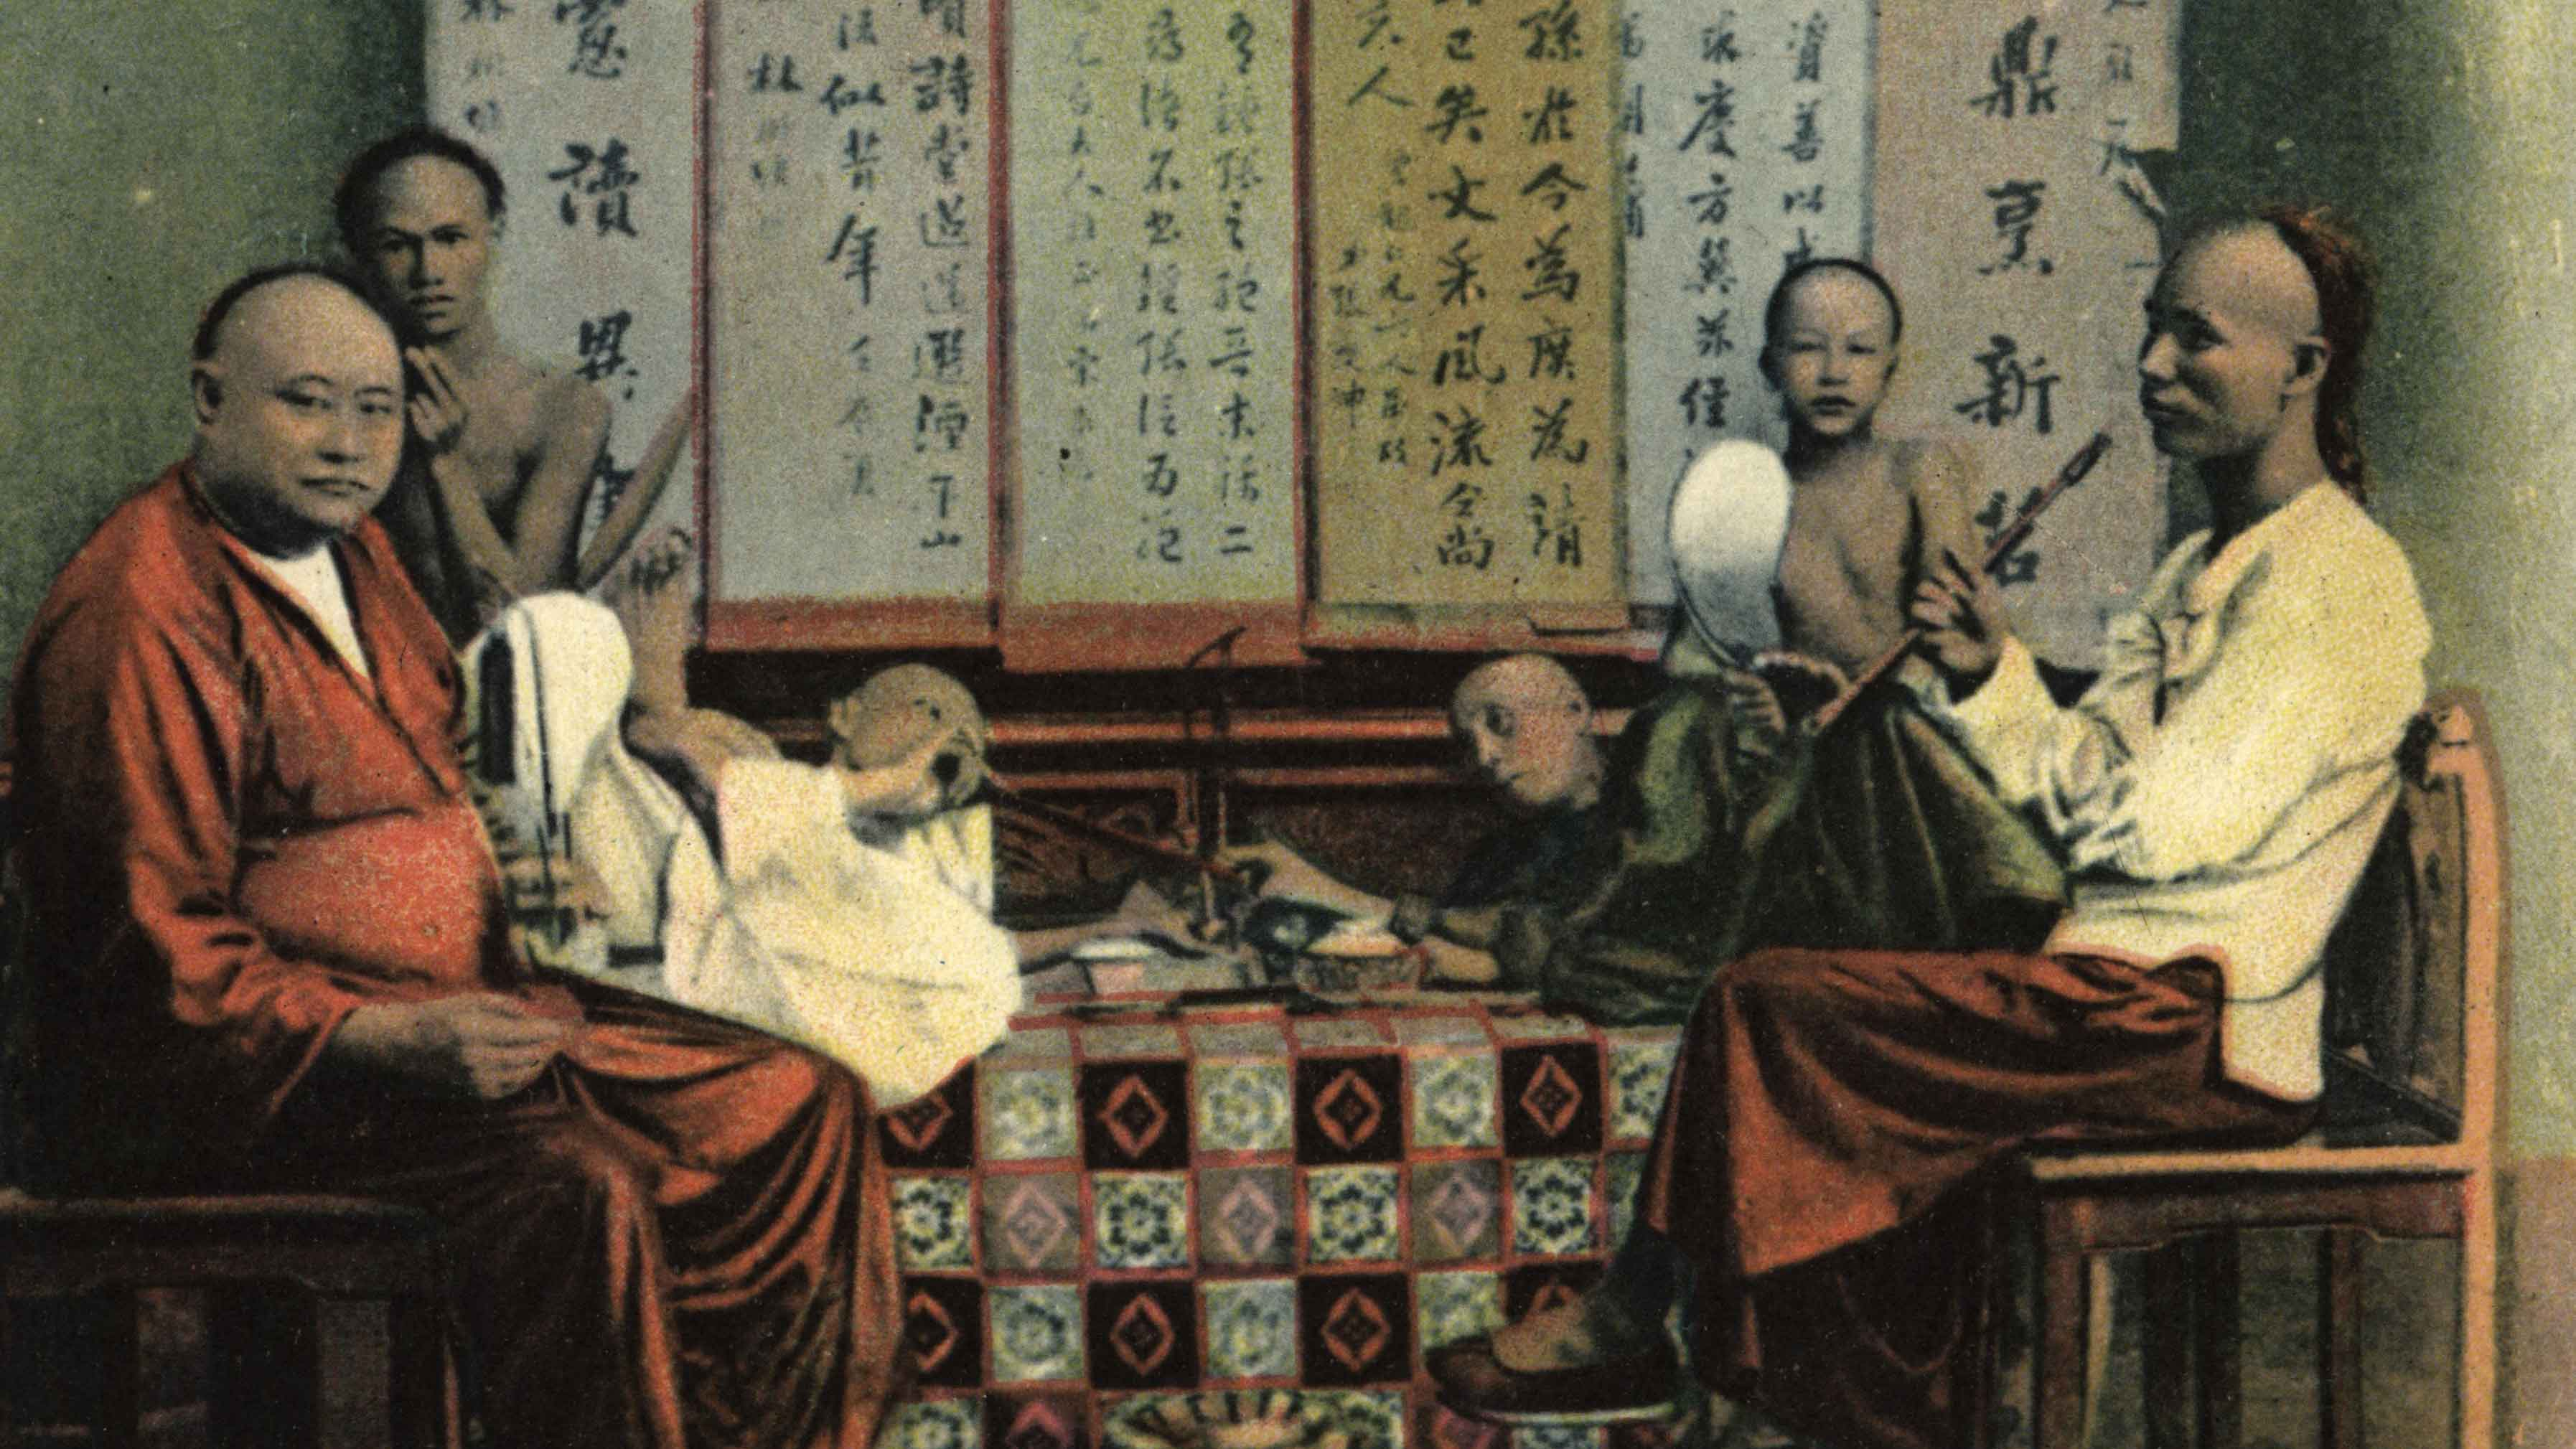 America's First Multimillionaire Got Rich Smuggling Opium